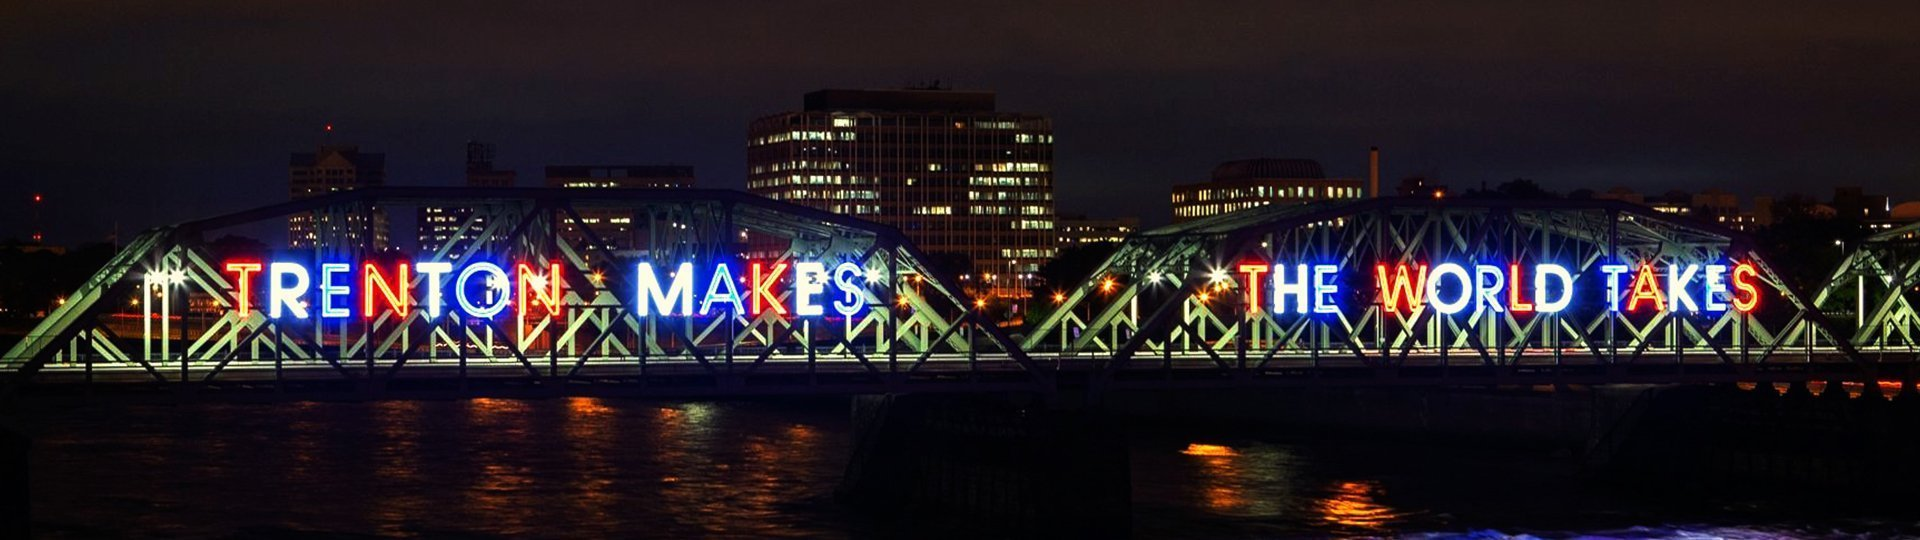 Trenton Makes Bridge Featuring New LED Lighting